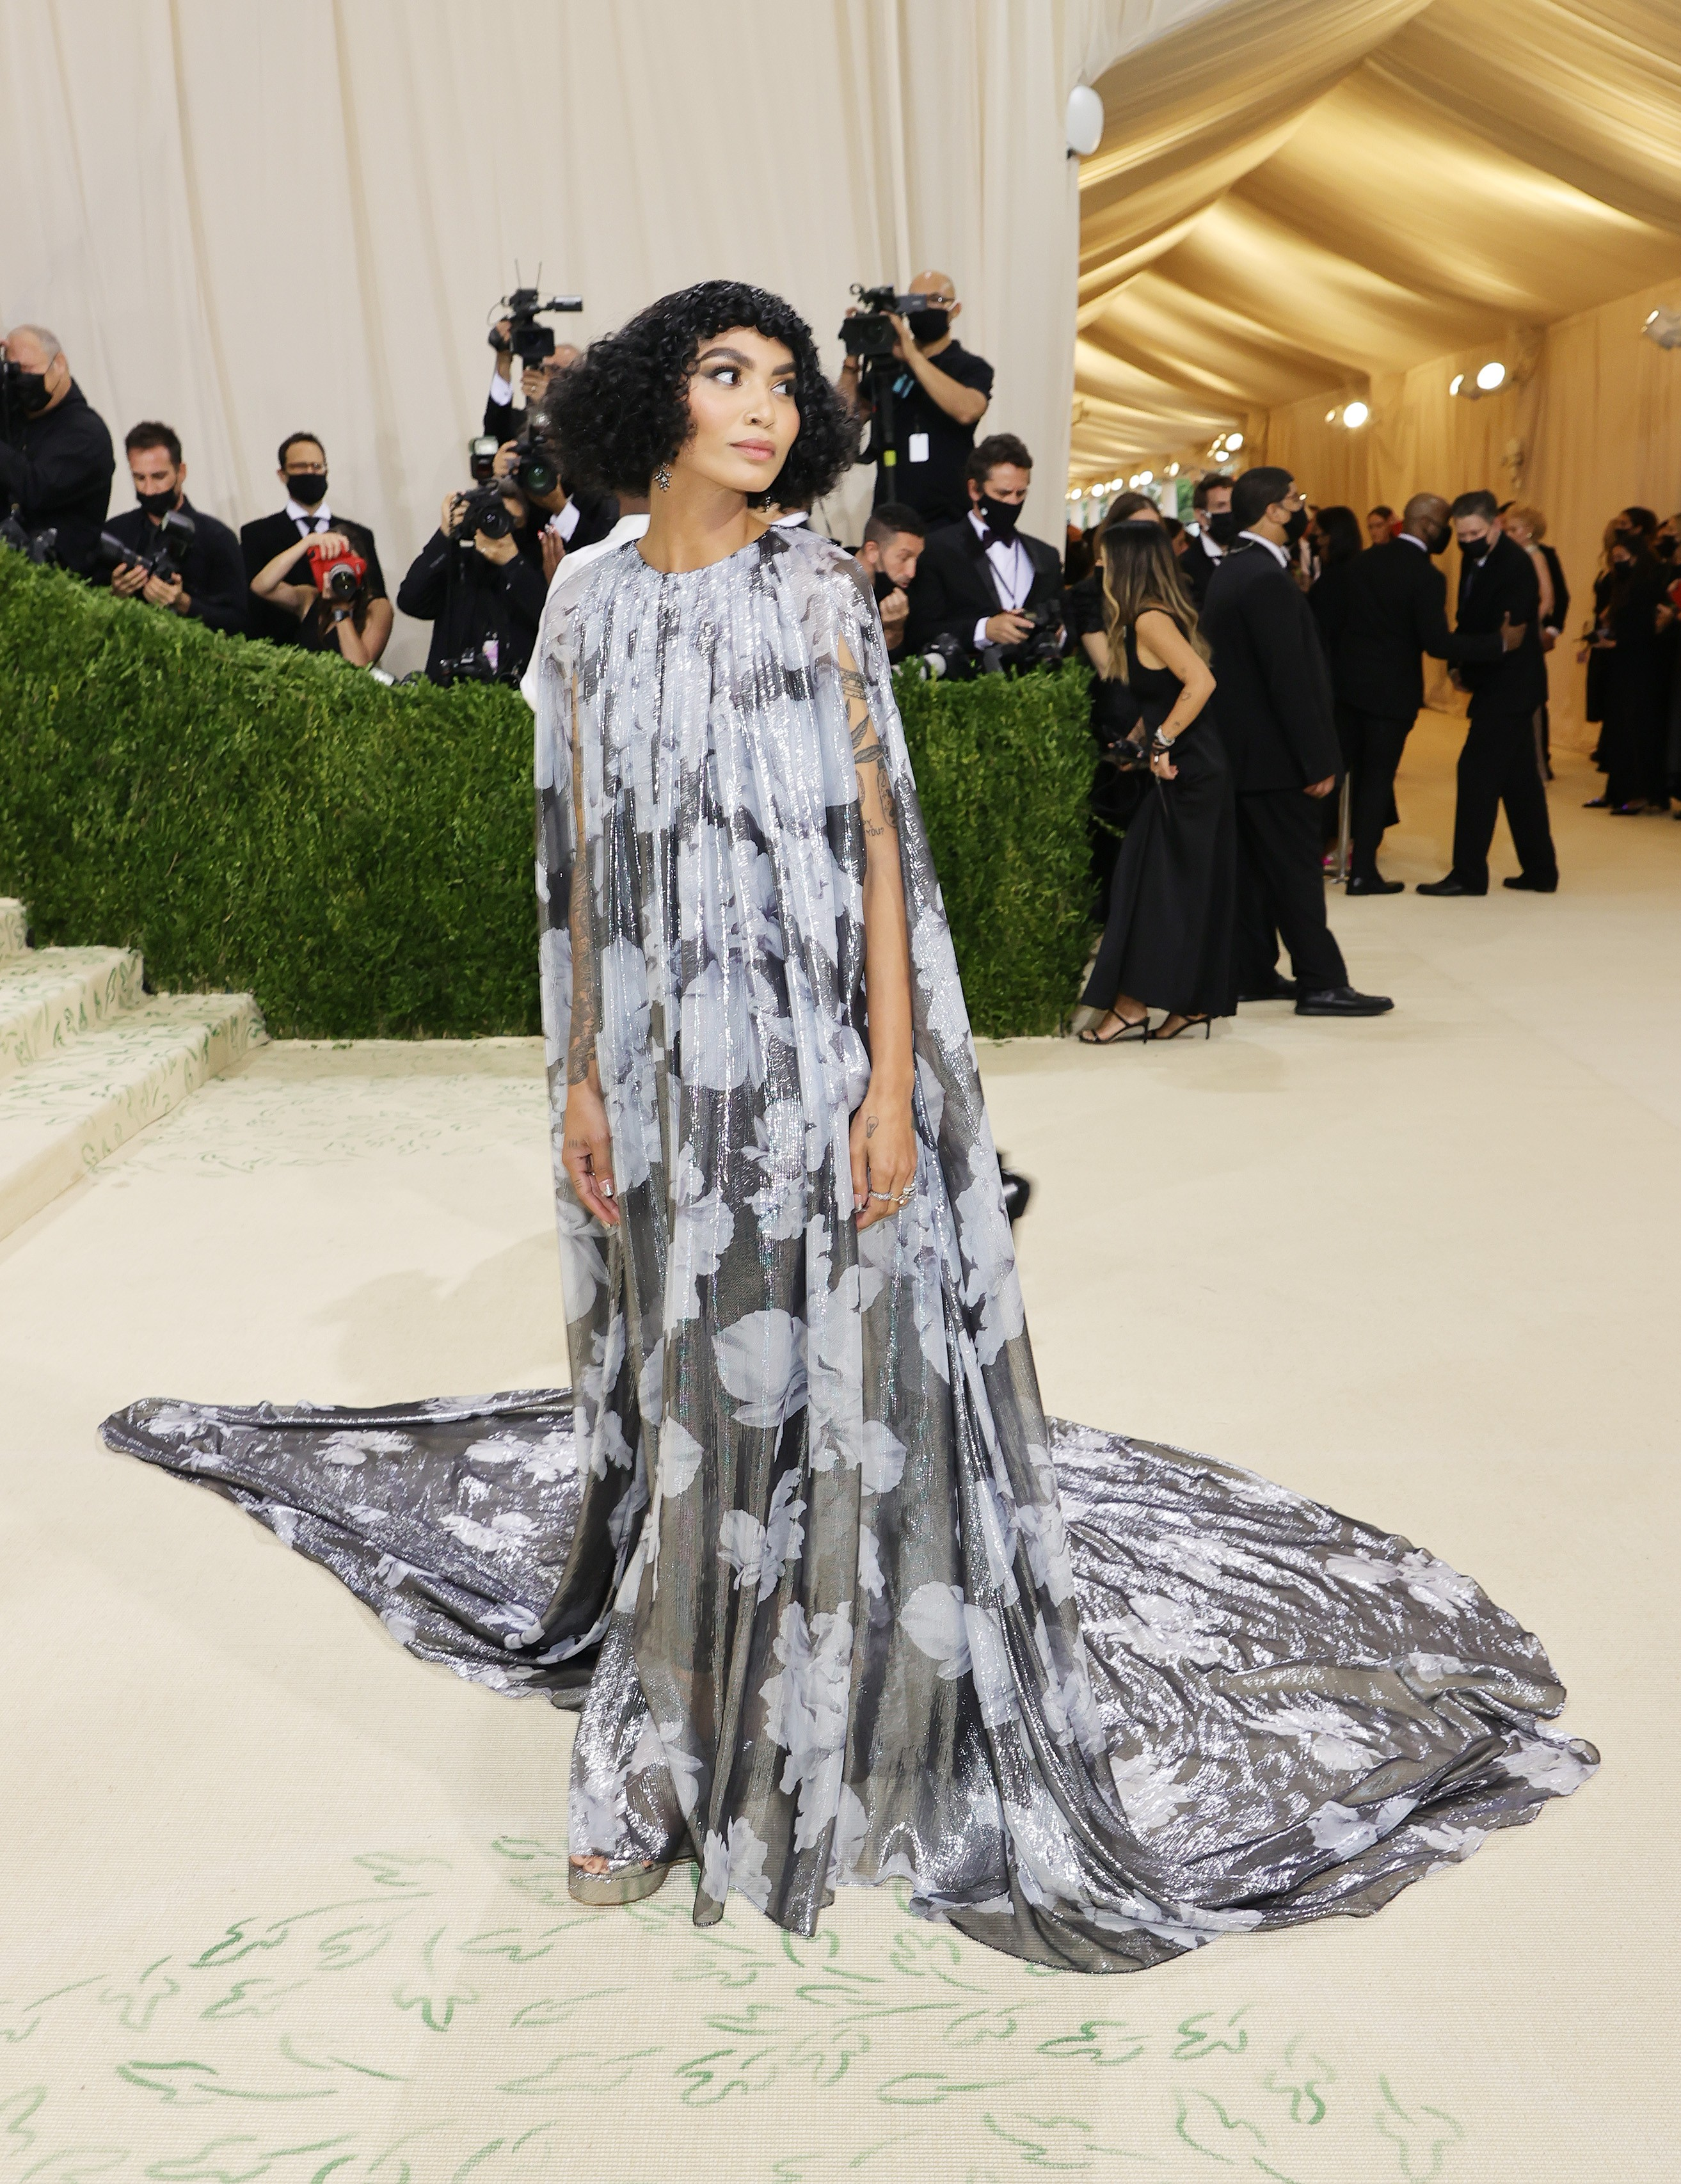 NEW YORK, NEW YORK - SEPTEMBER 13: Yara Shahidi attends The 2021 Met Gala Celebrating In America: A Lexicon Of Fashion at Metropolitan Museum of Art on September 13, 2021 in New York City. (Photo by Mike Coppola/Getty Images) (Foto: Getty Images)